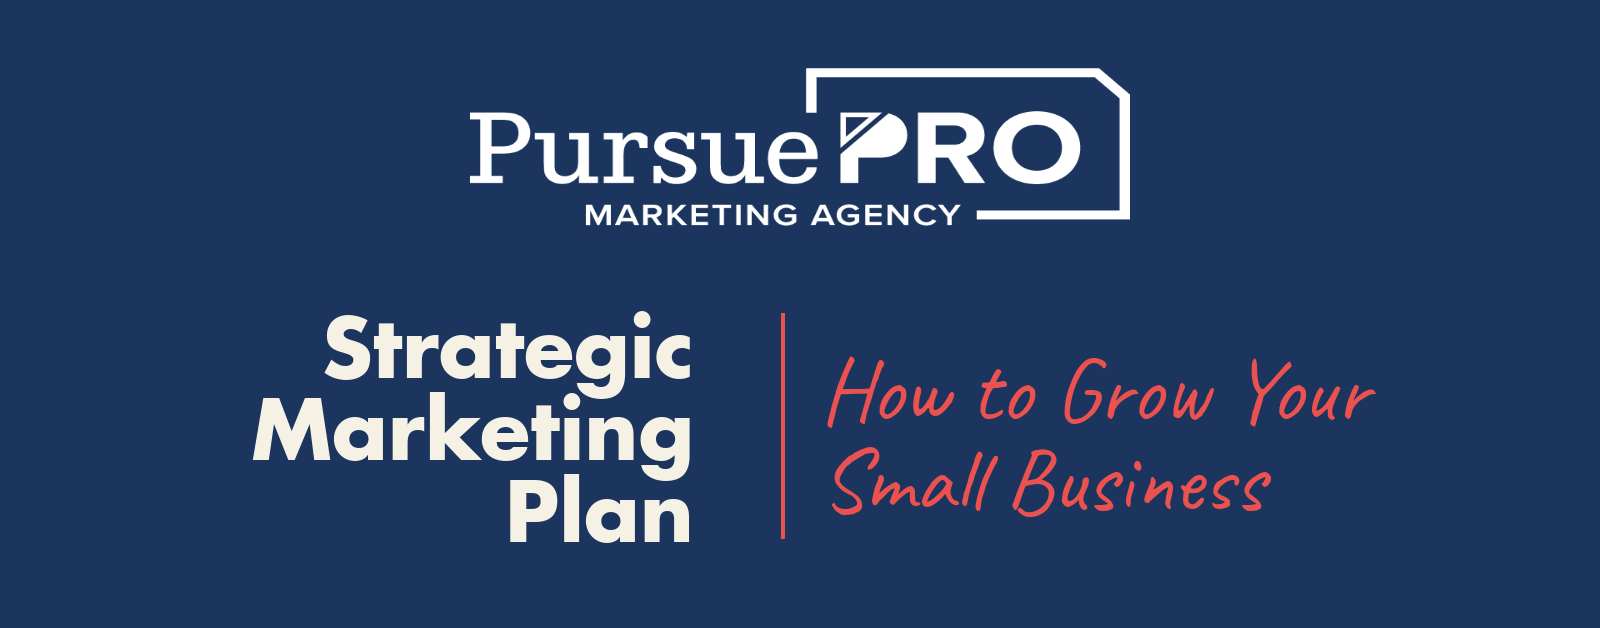 Strategic Marketing Plan | How to Grow Your Small Business